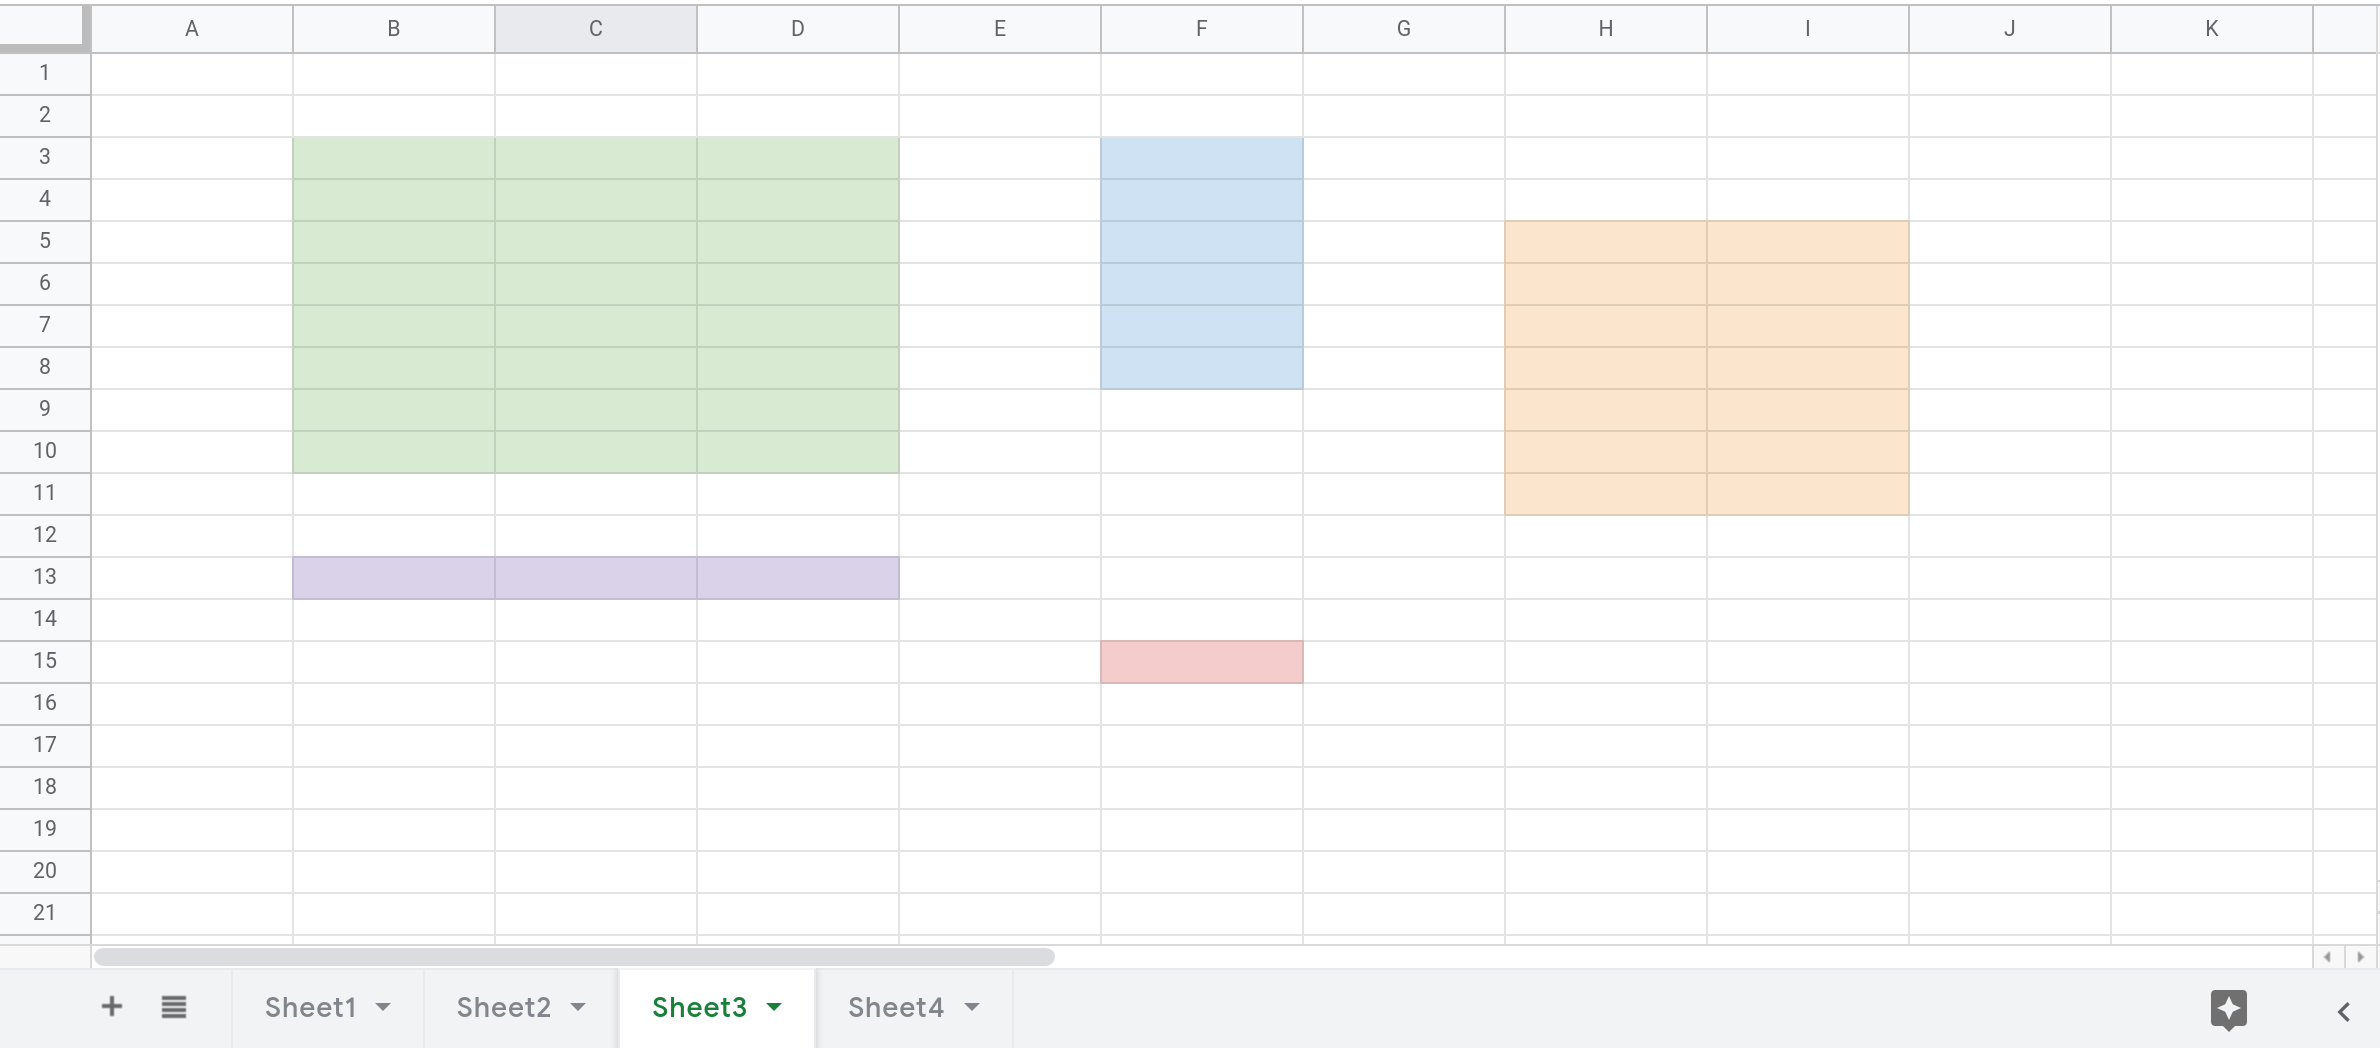 Screenshot of a Google Sheets spreadsheet that shows 5 ranges highlighted in Sheet3.